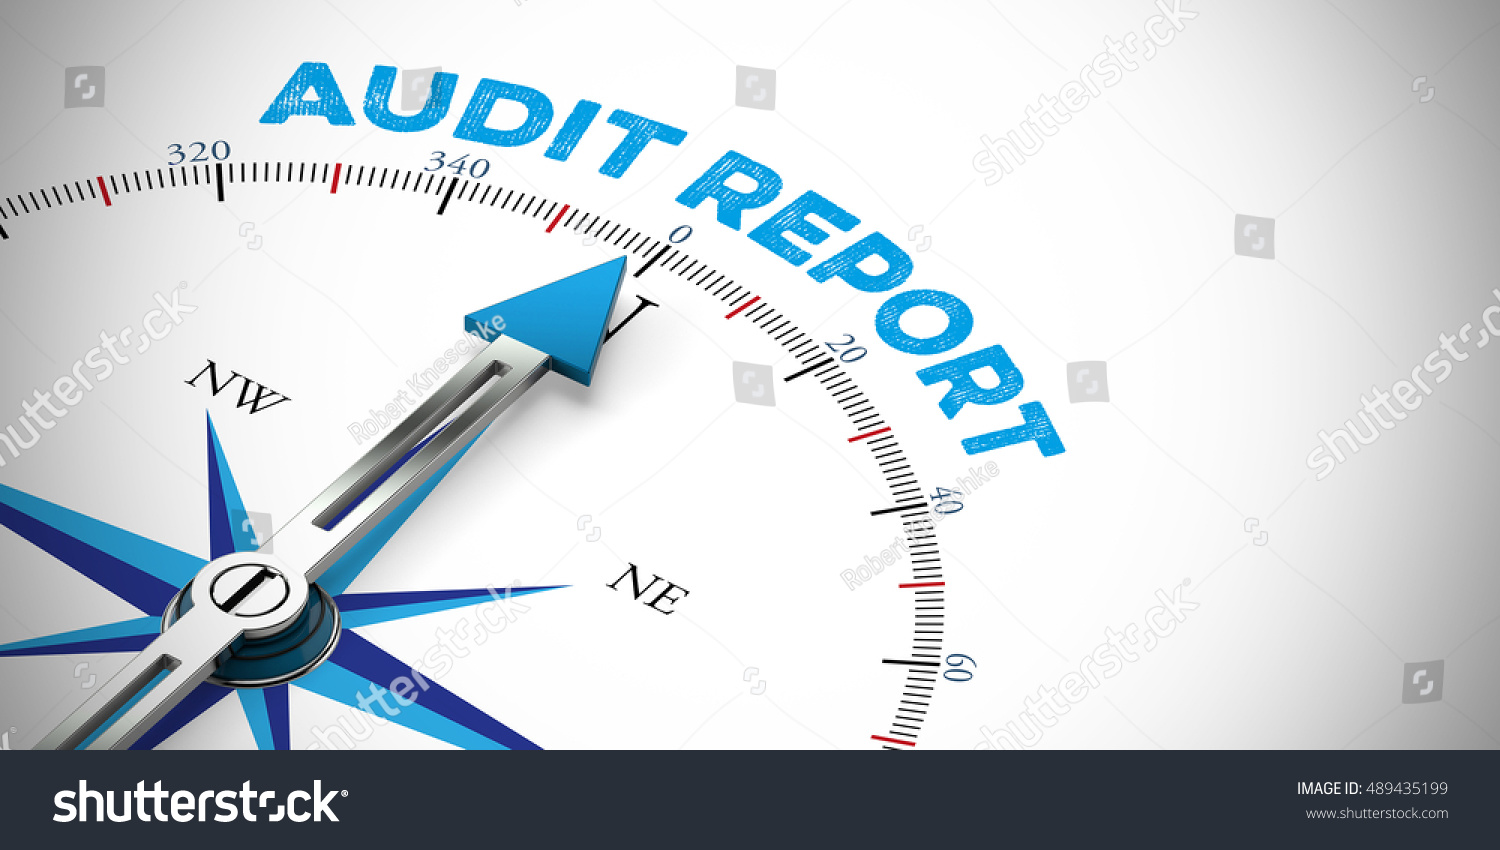 concept of management audit 3 energy management and audit bureau of energy efficiency 55 itoring and analysis of use of energy including submission of technical report containing rec-.